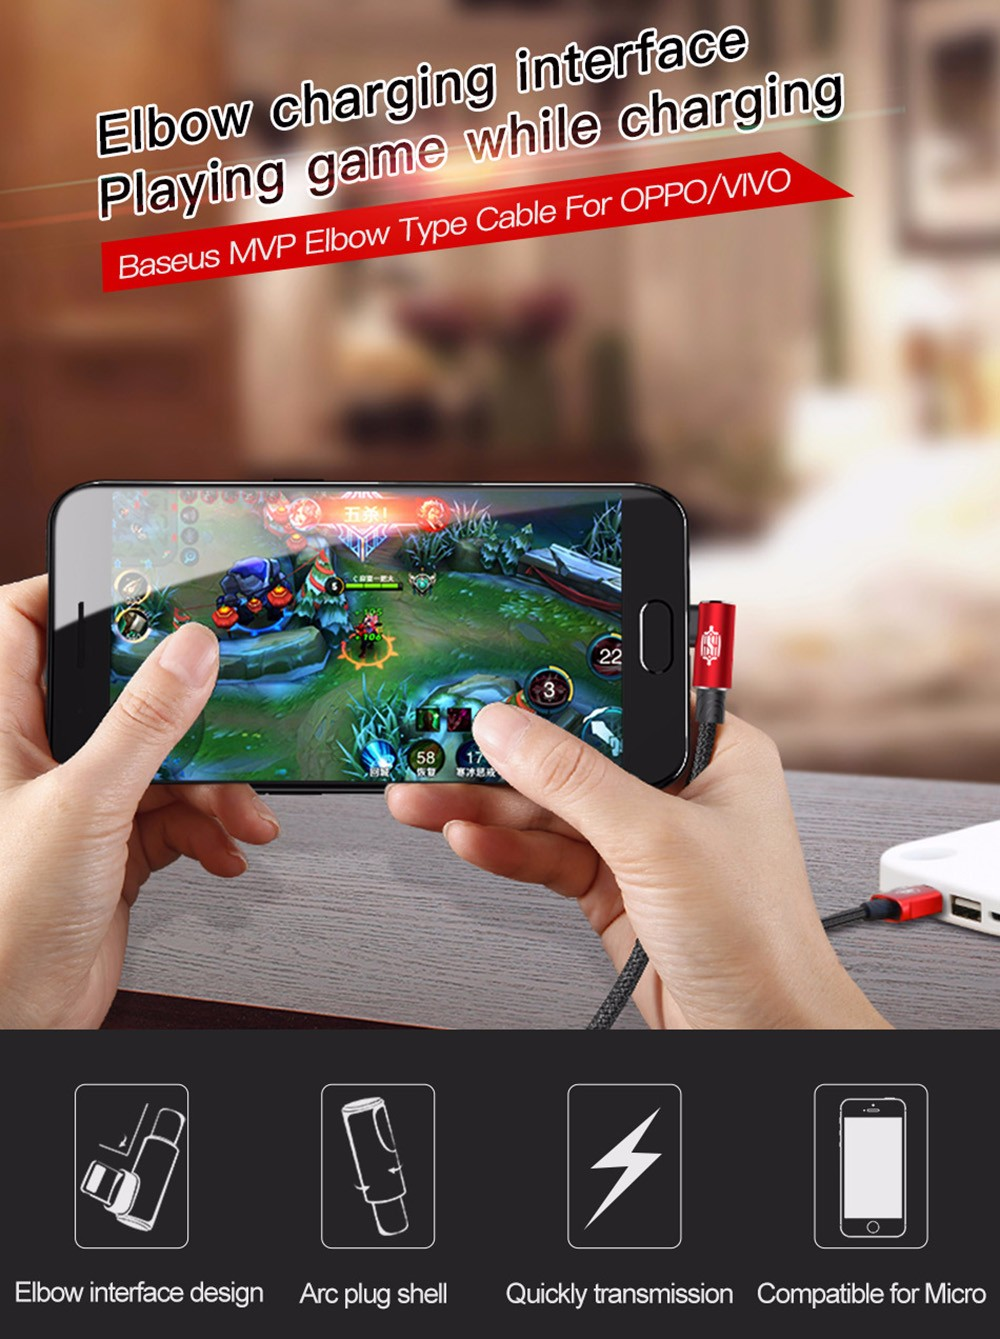 Baseus CAMMVP - B01 USB - A Cable to Micro USB for Playing Mobile Games